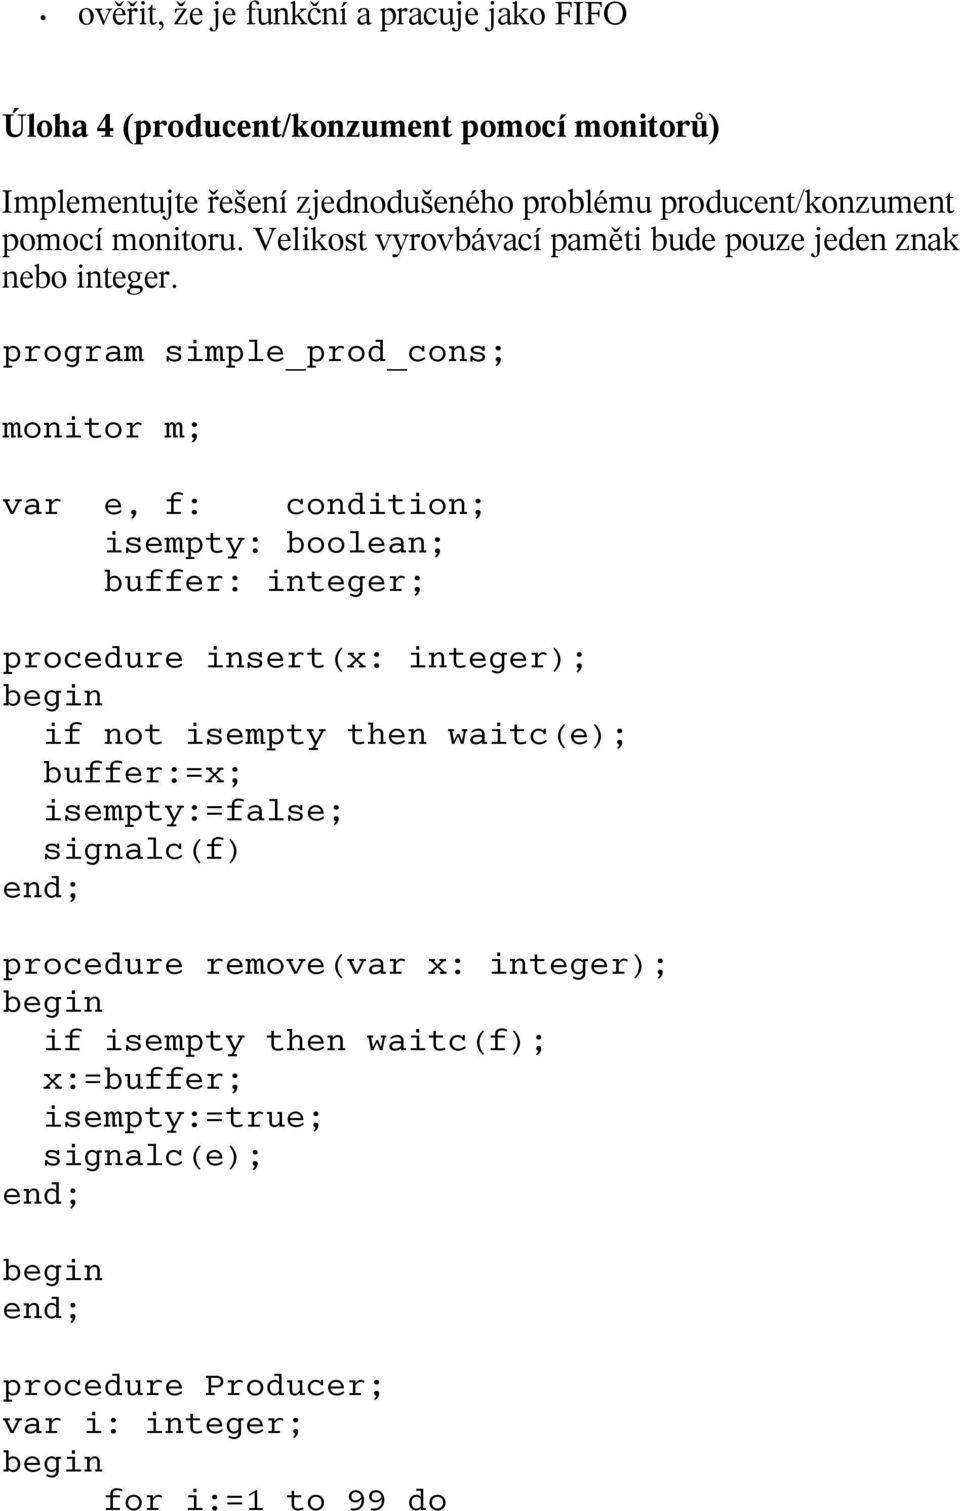 program simple_prod_cons; monitor m; var e, f: condition; isempty: boolean; buffer: integer; procedure insert(x: integer); if not isempty then